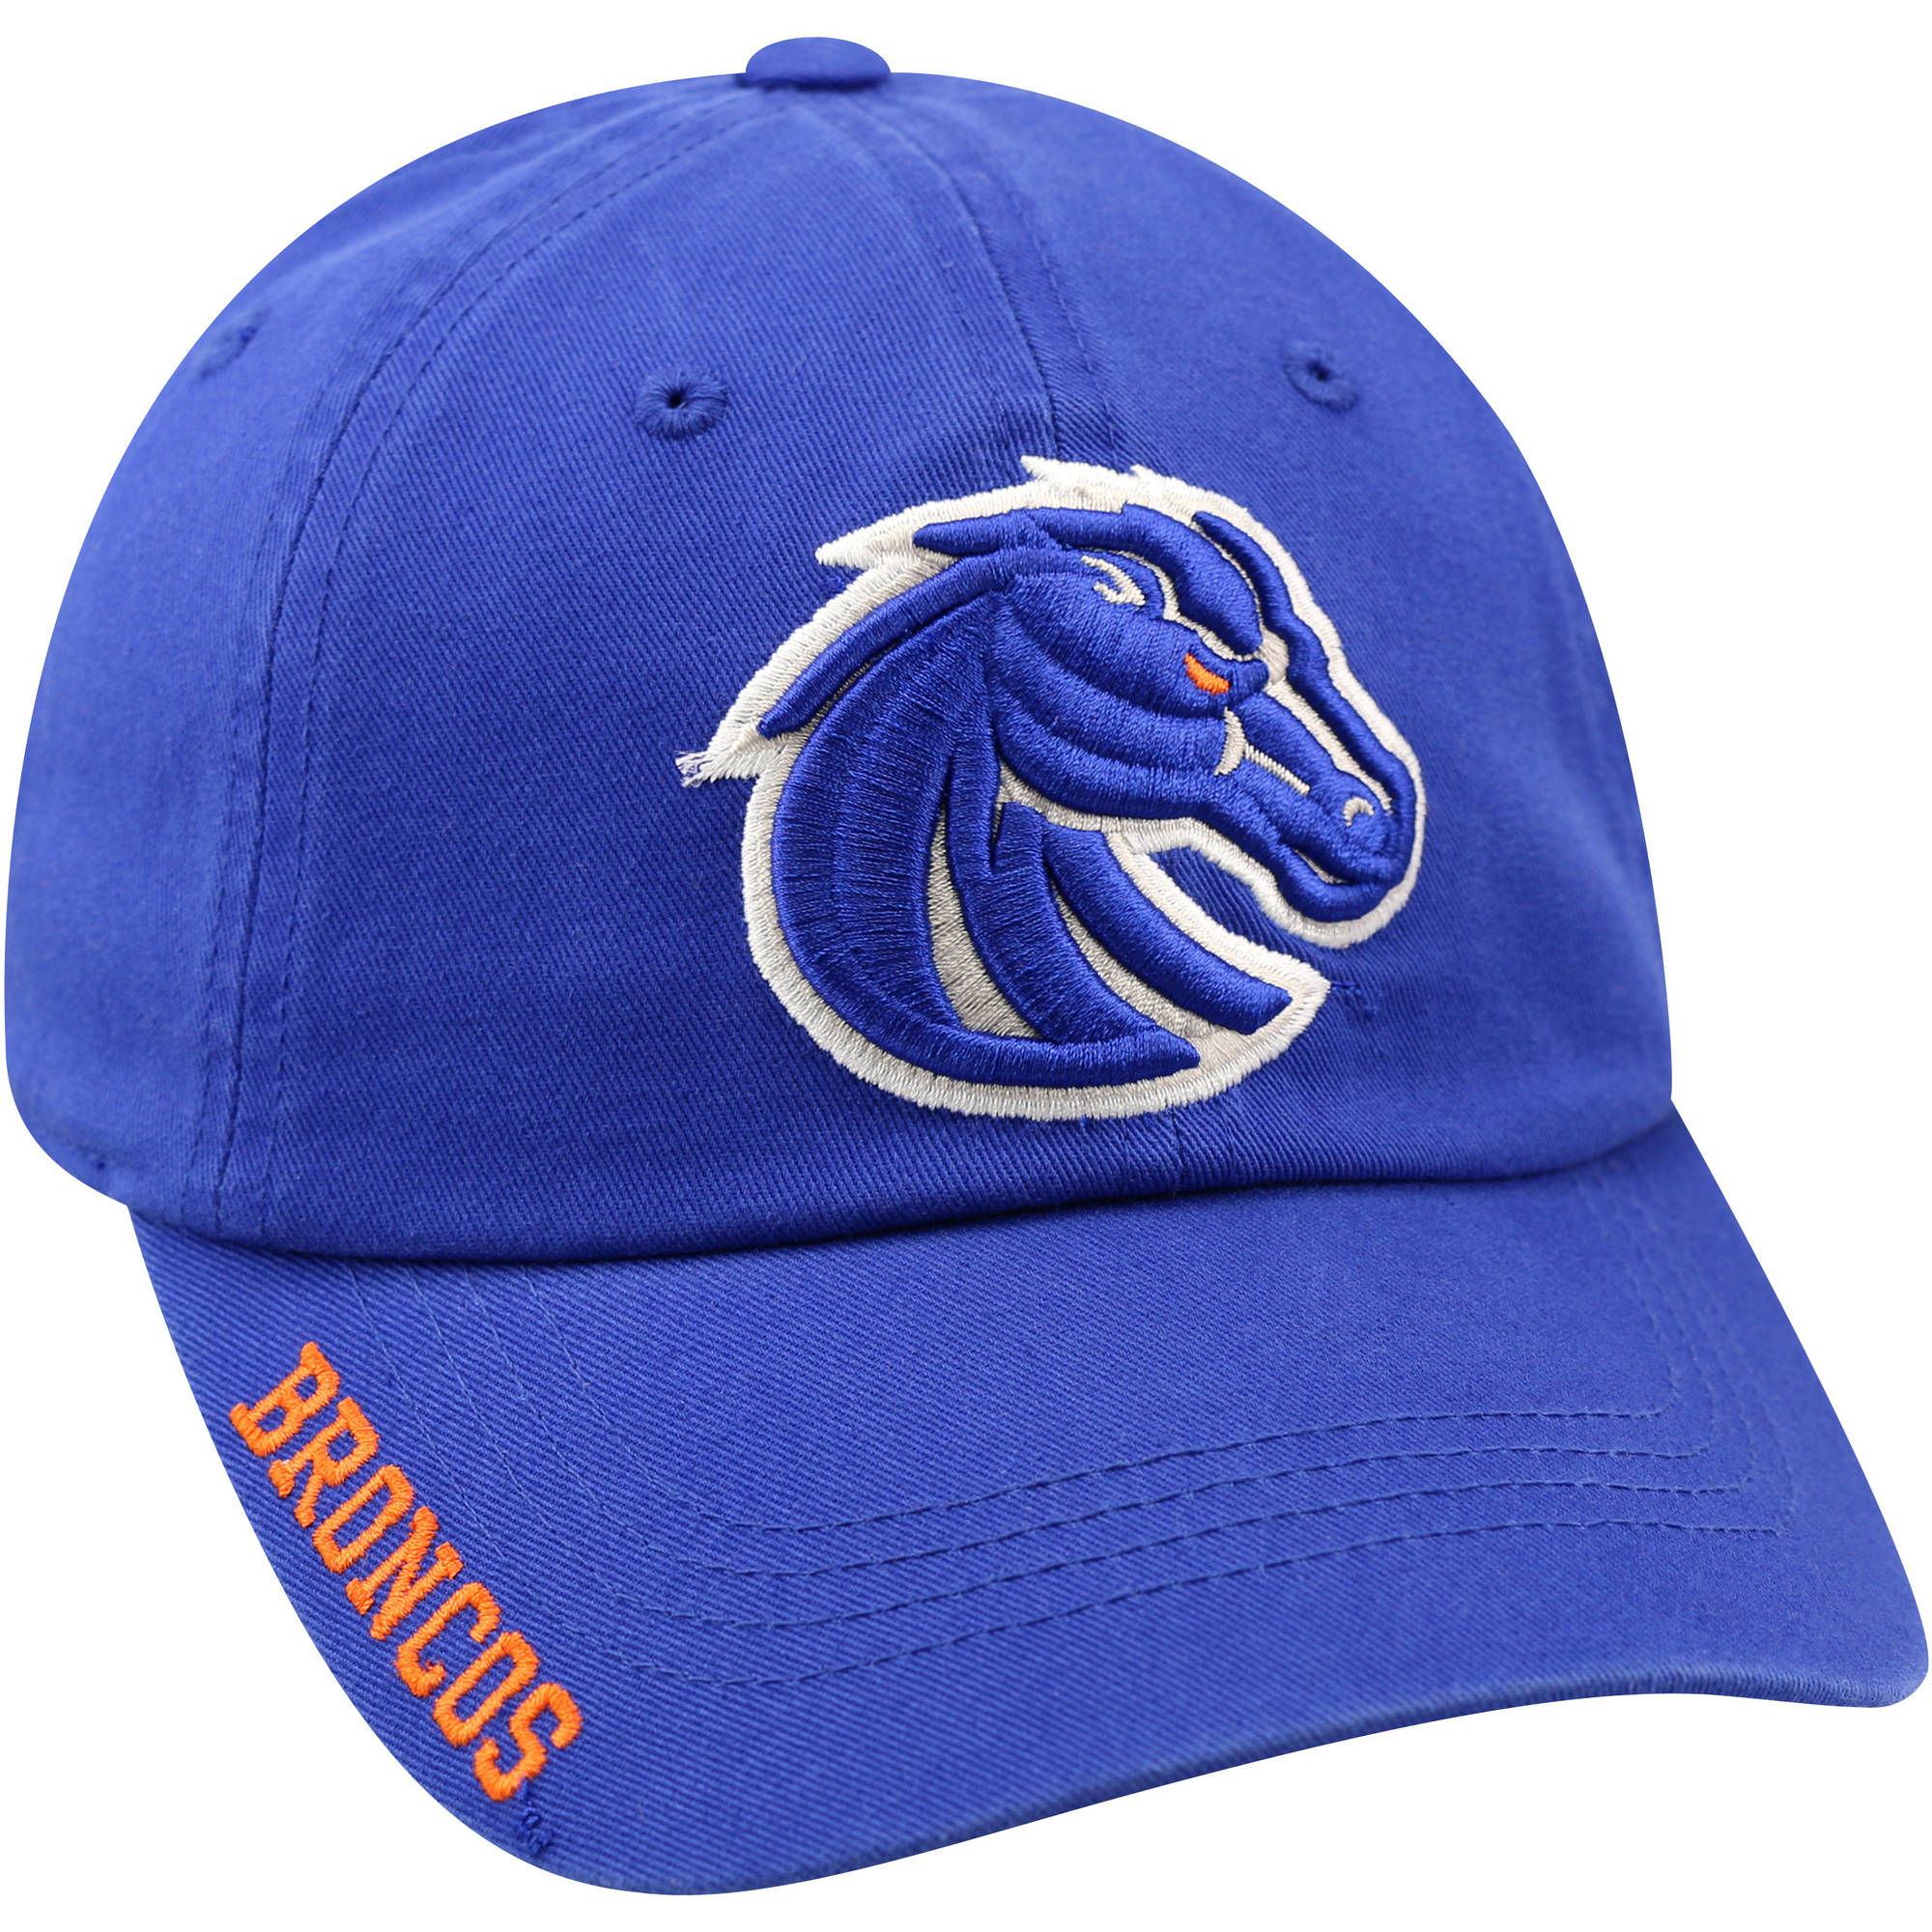 NCAA Men's Boise State Broncos Home Cap